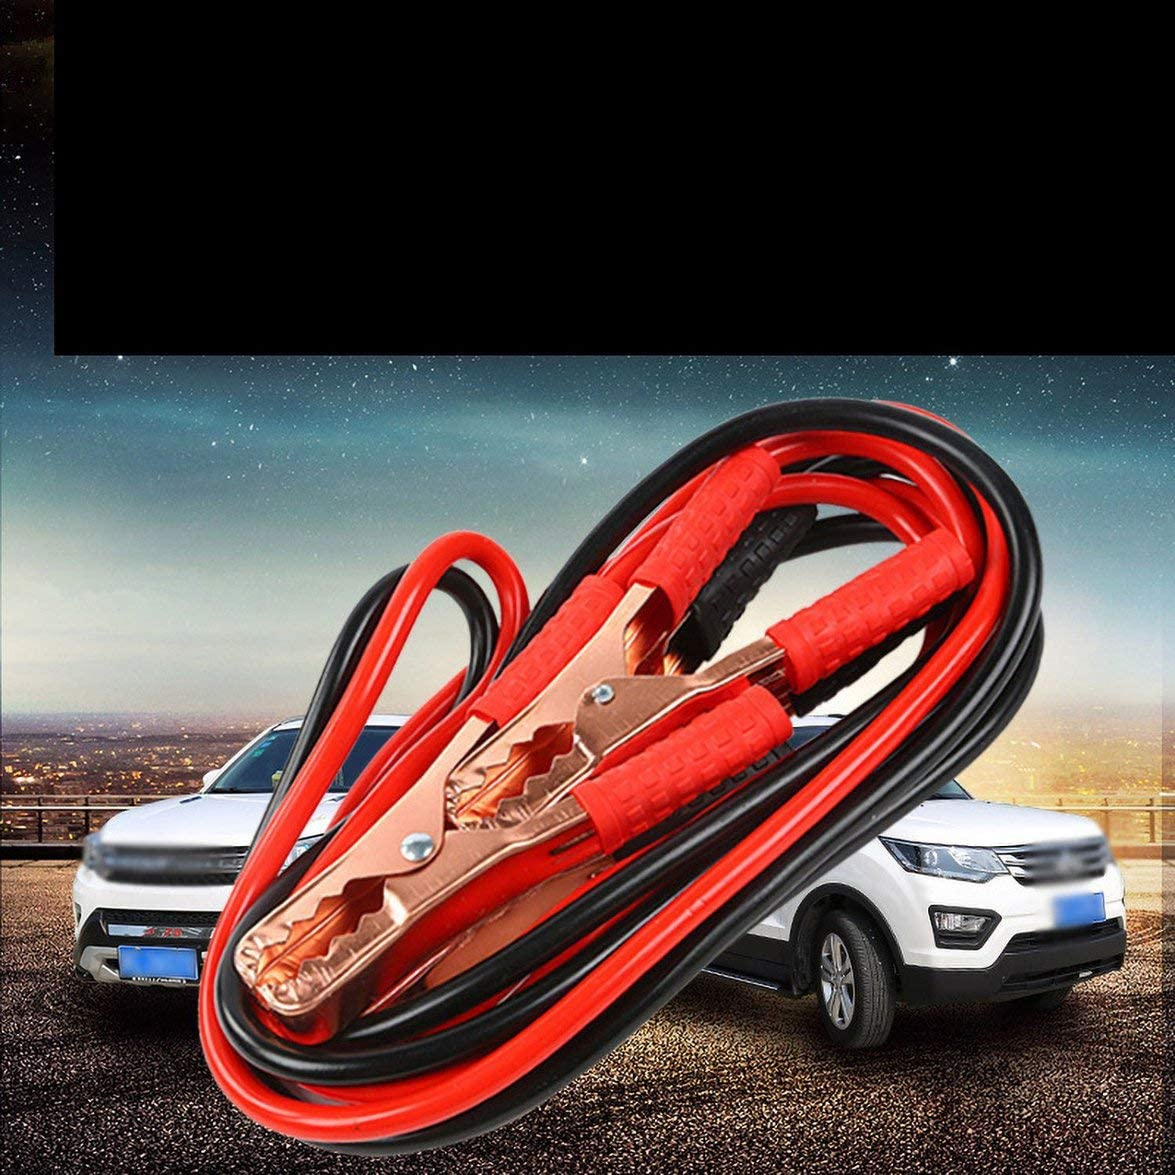 Heavy Duty Durable Molded Wire Cable Gauge Power Booster Cable Jumping Cables Emergency Car Battery Jumper